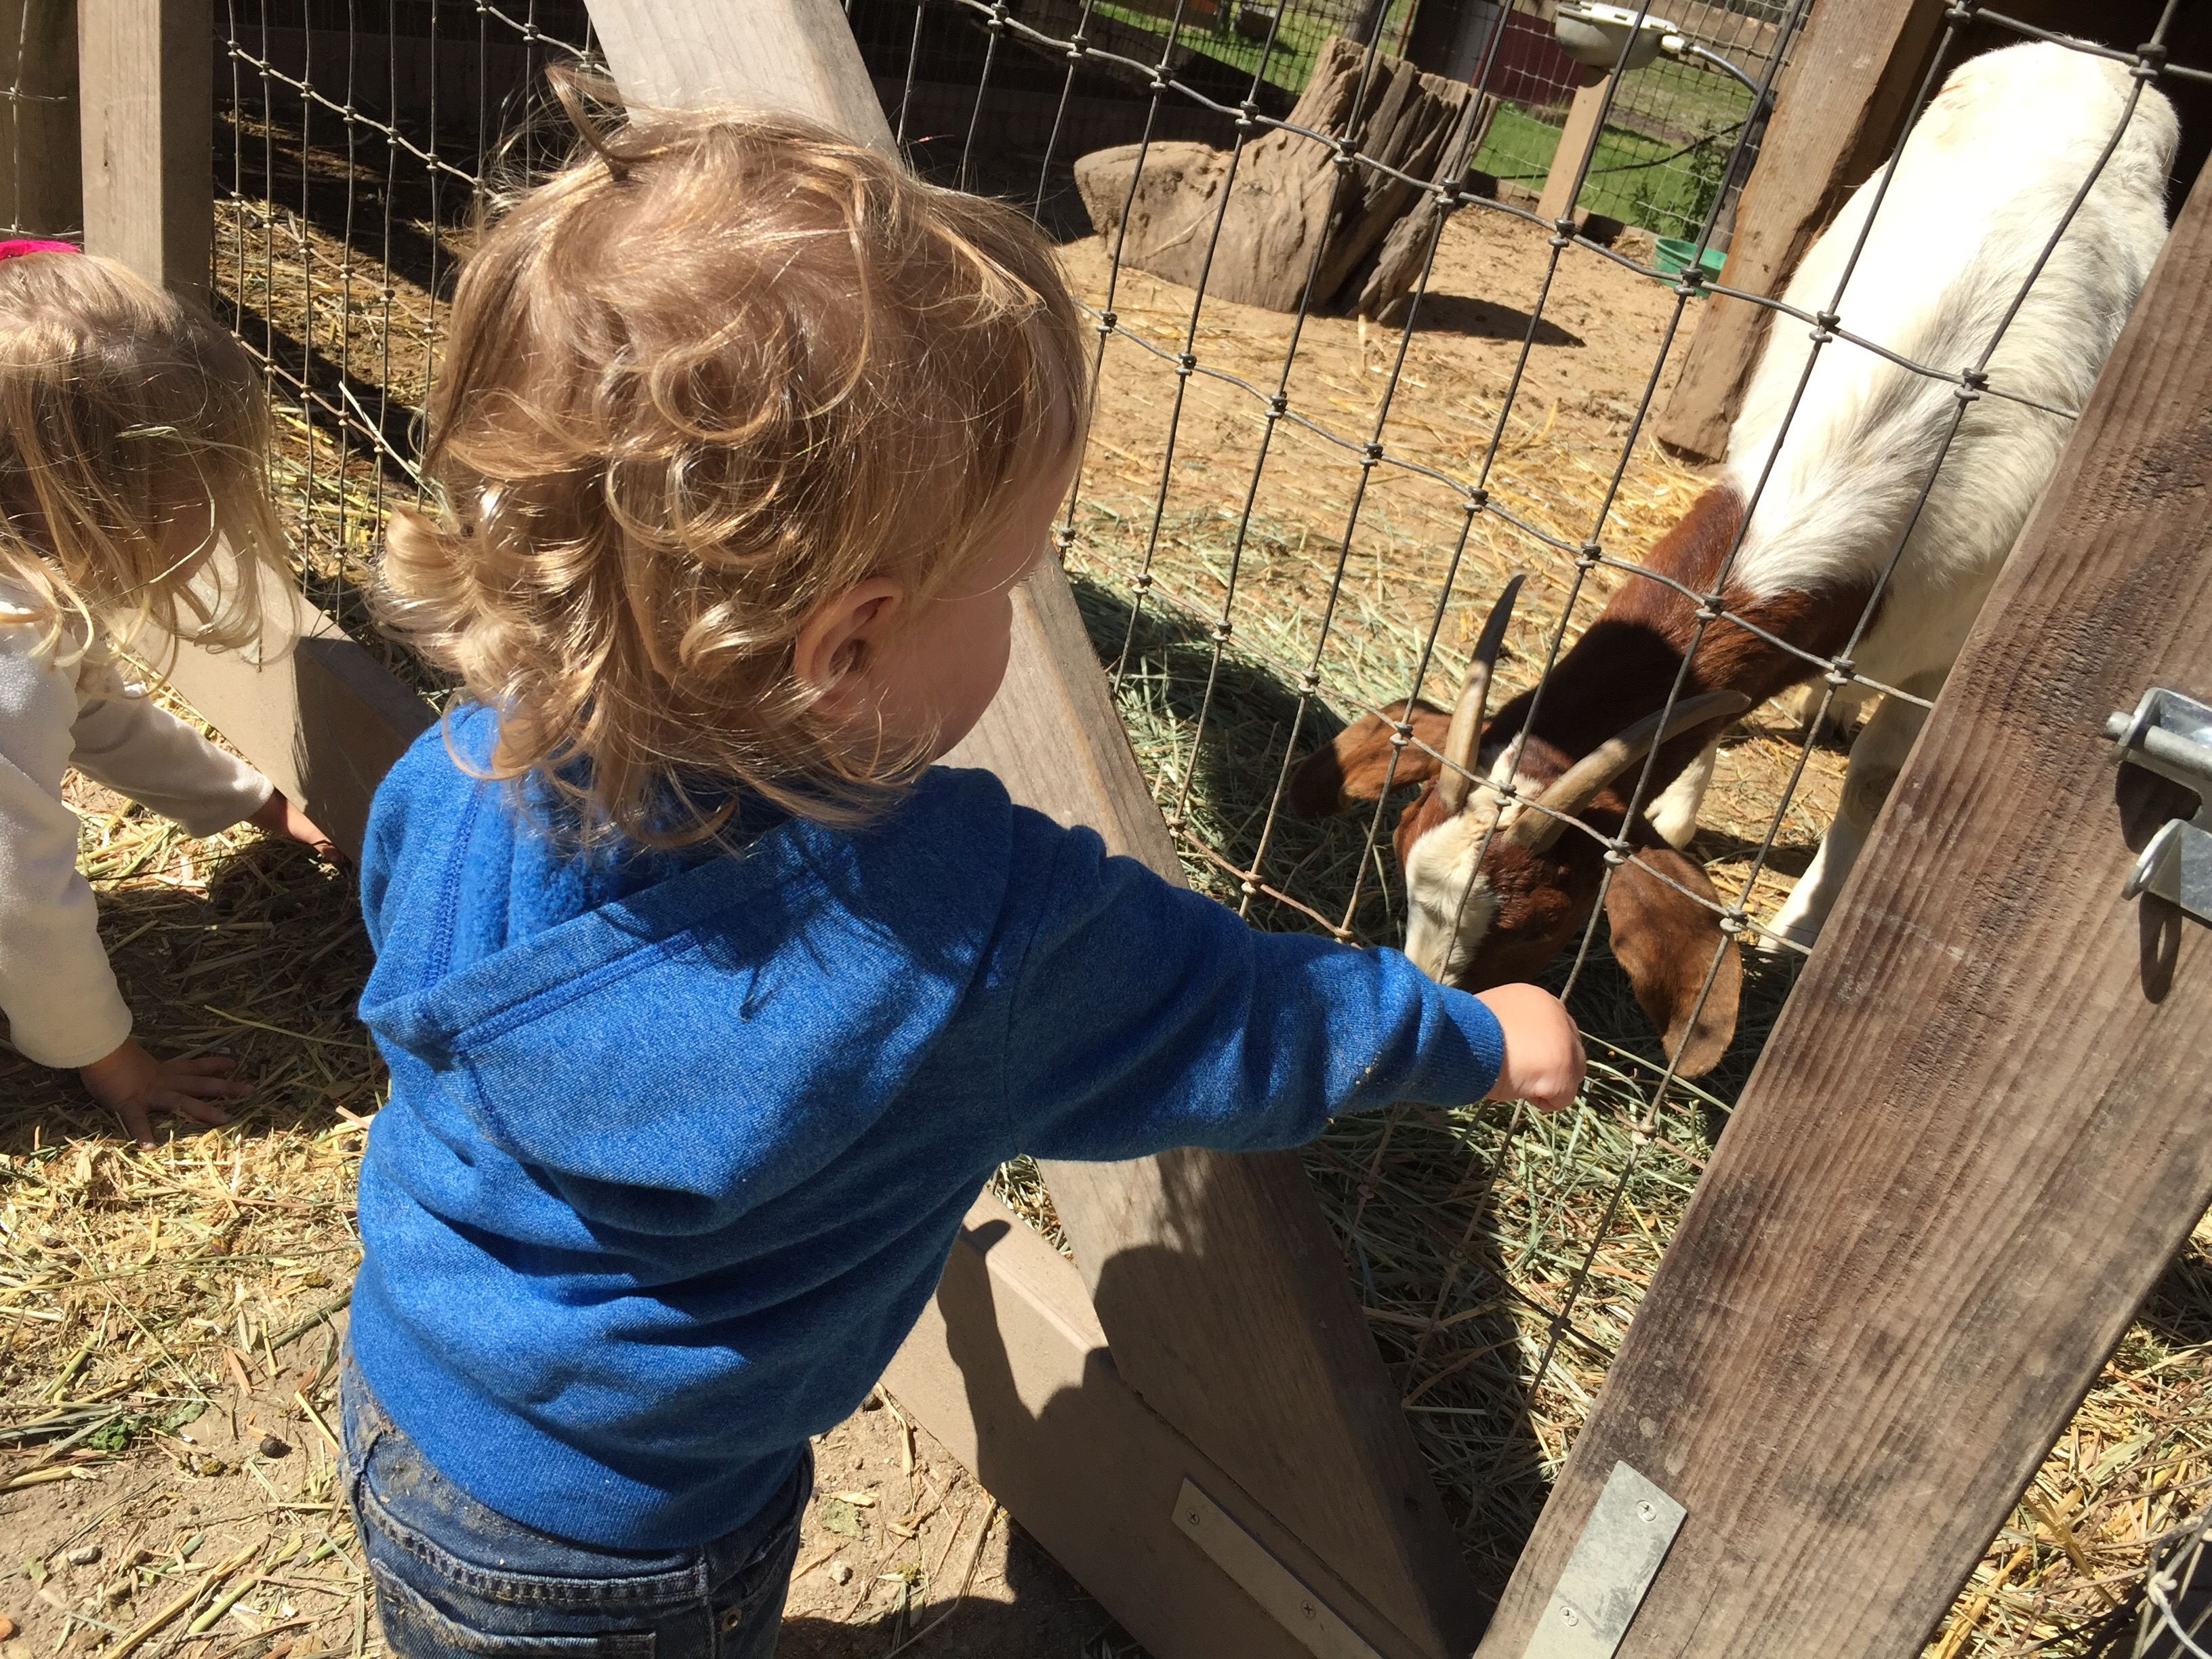 Closeup shot of toddler and baby feeding the goats at Avila Valley Barn in San Luis Obispo.